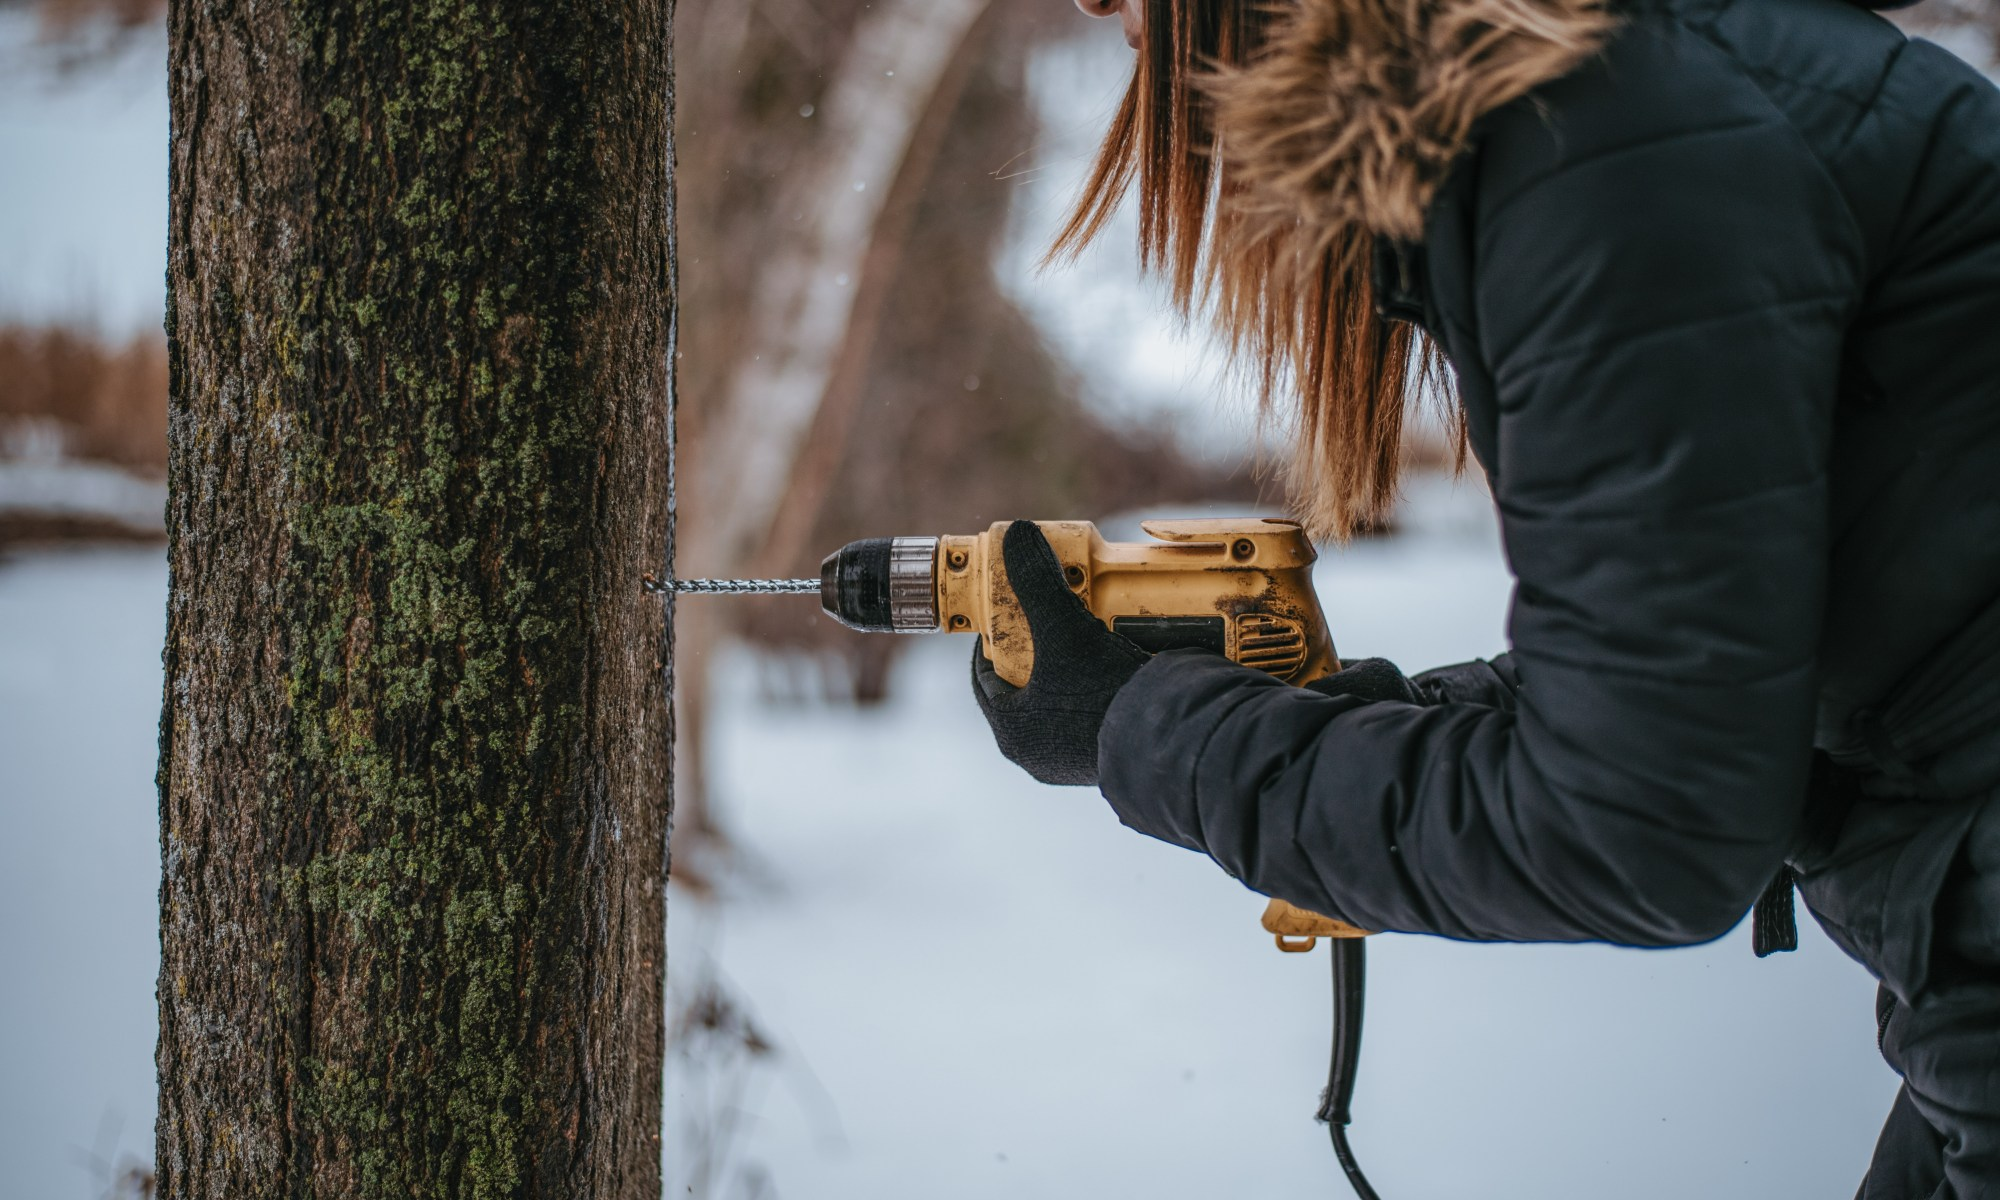 Drilling hole into maple tree